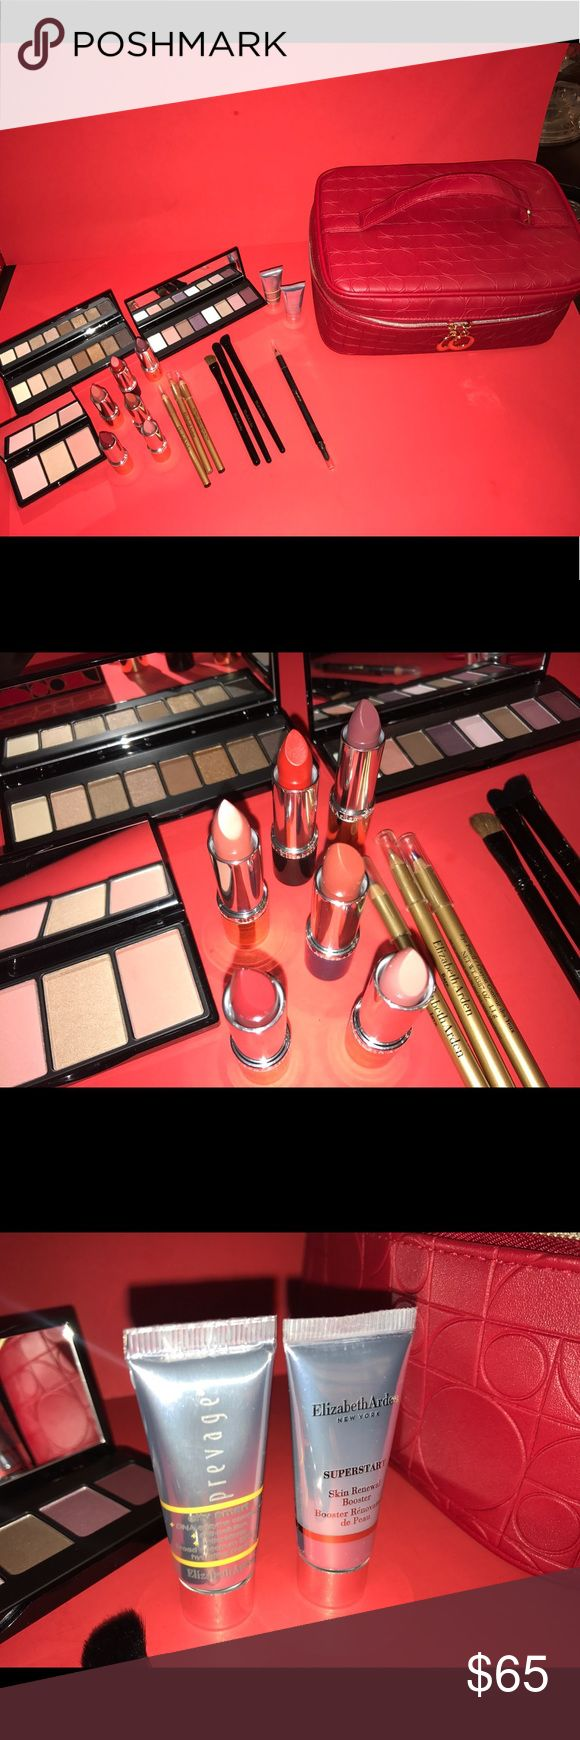 Elizabeth Arden makeup set 3 eyeshadow palettes, 6 lipsticks, 3 eyeliners, 1 lip pencil, 3 makeup brushes, skin renewal booster, city smart hydrating shield cream, and carrying case. Worth close to $200 Elizabeth Arden Makeup